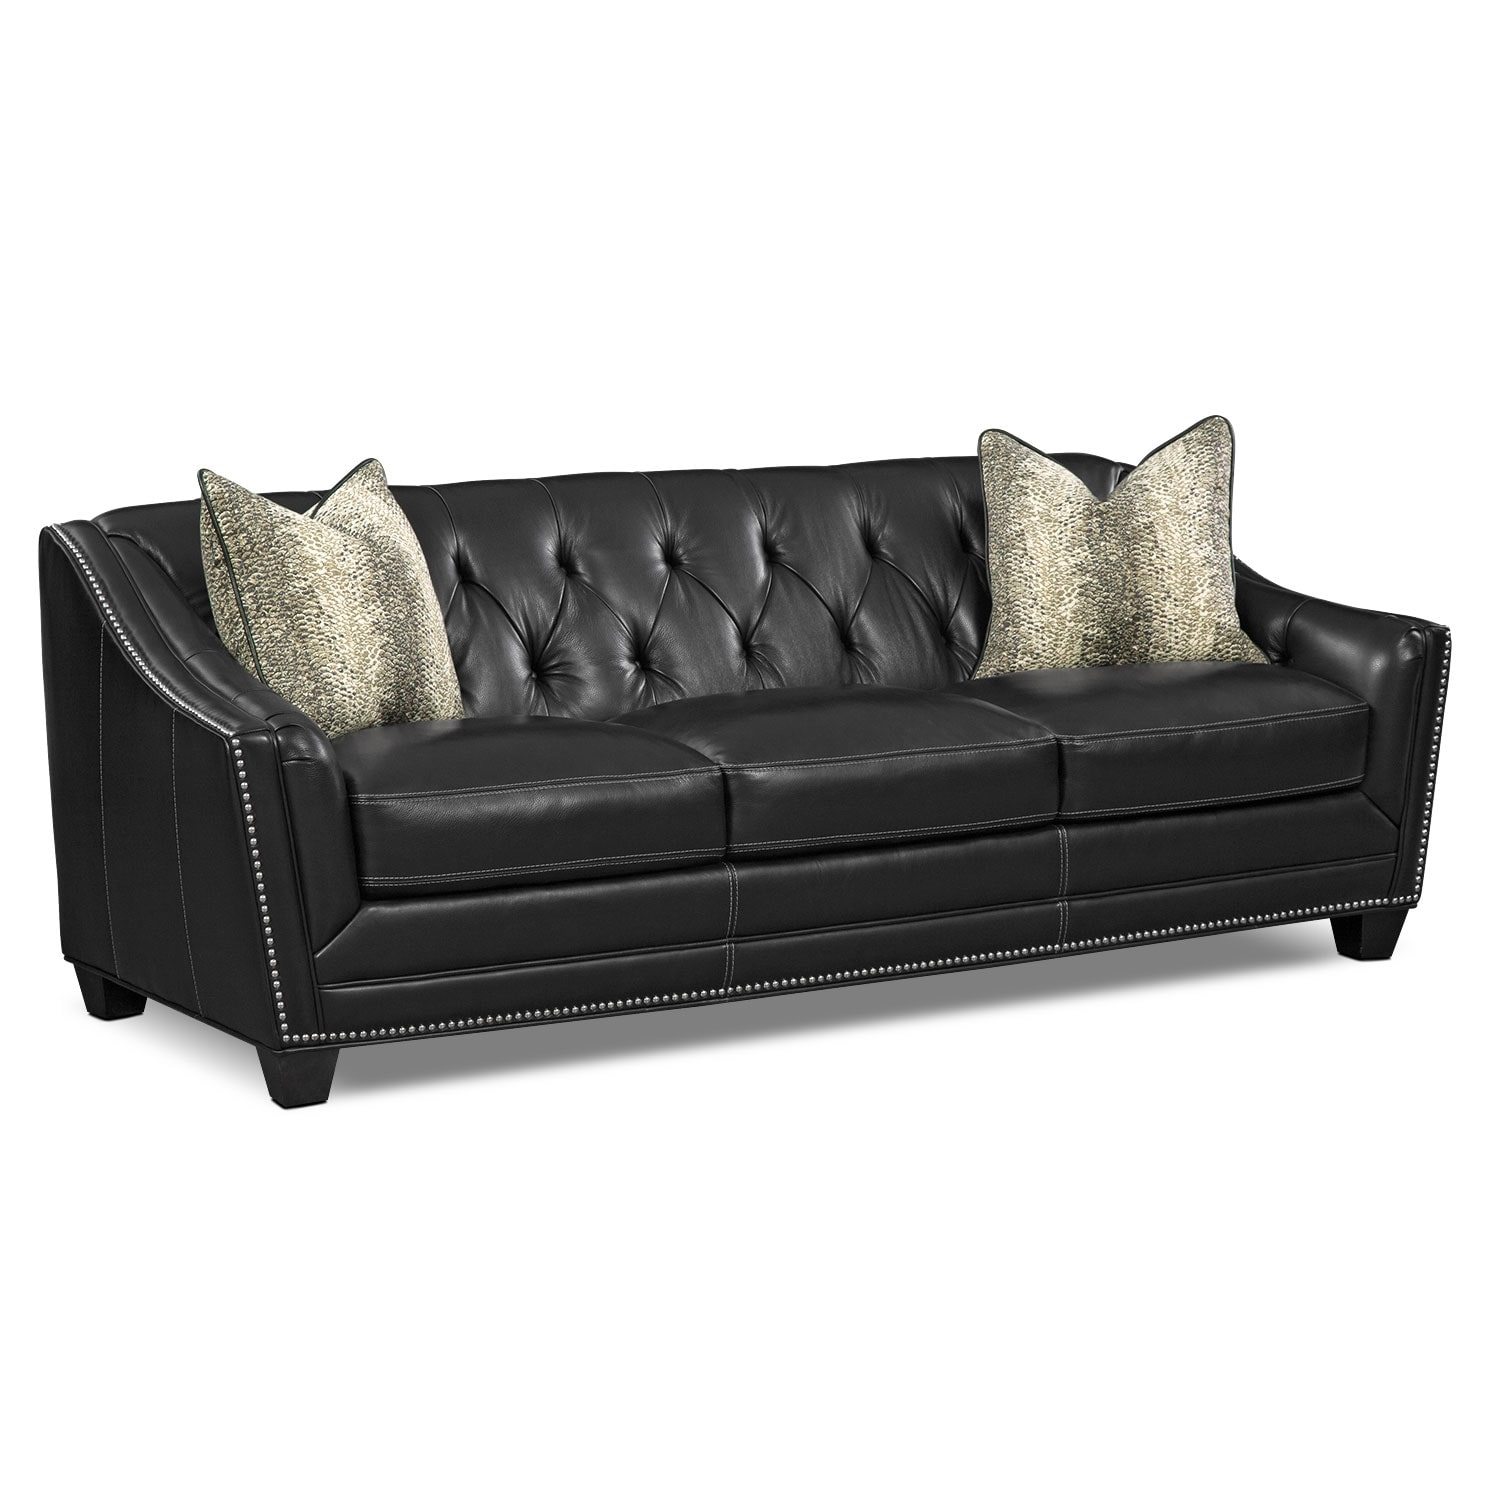 Living Room Furniture - Alexis Midnight Sofa